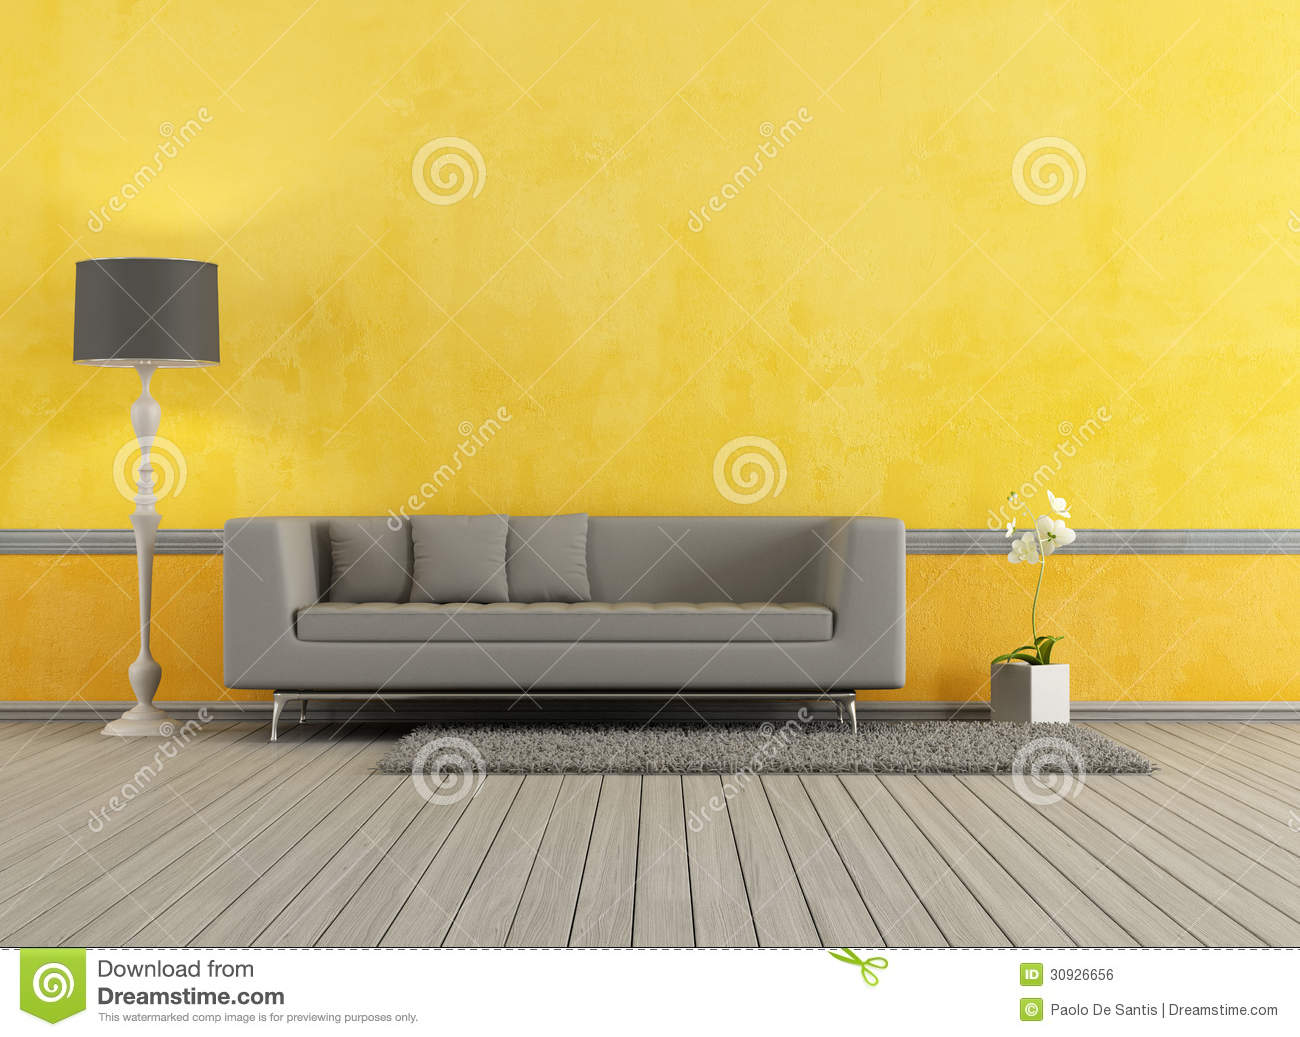 salon gris et jaune illustration stock image du tage. Black Bedroom Furniture Sets. Home Design Ideas